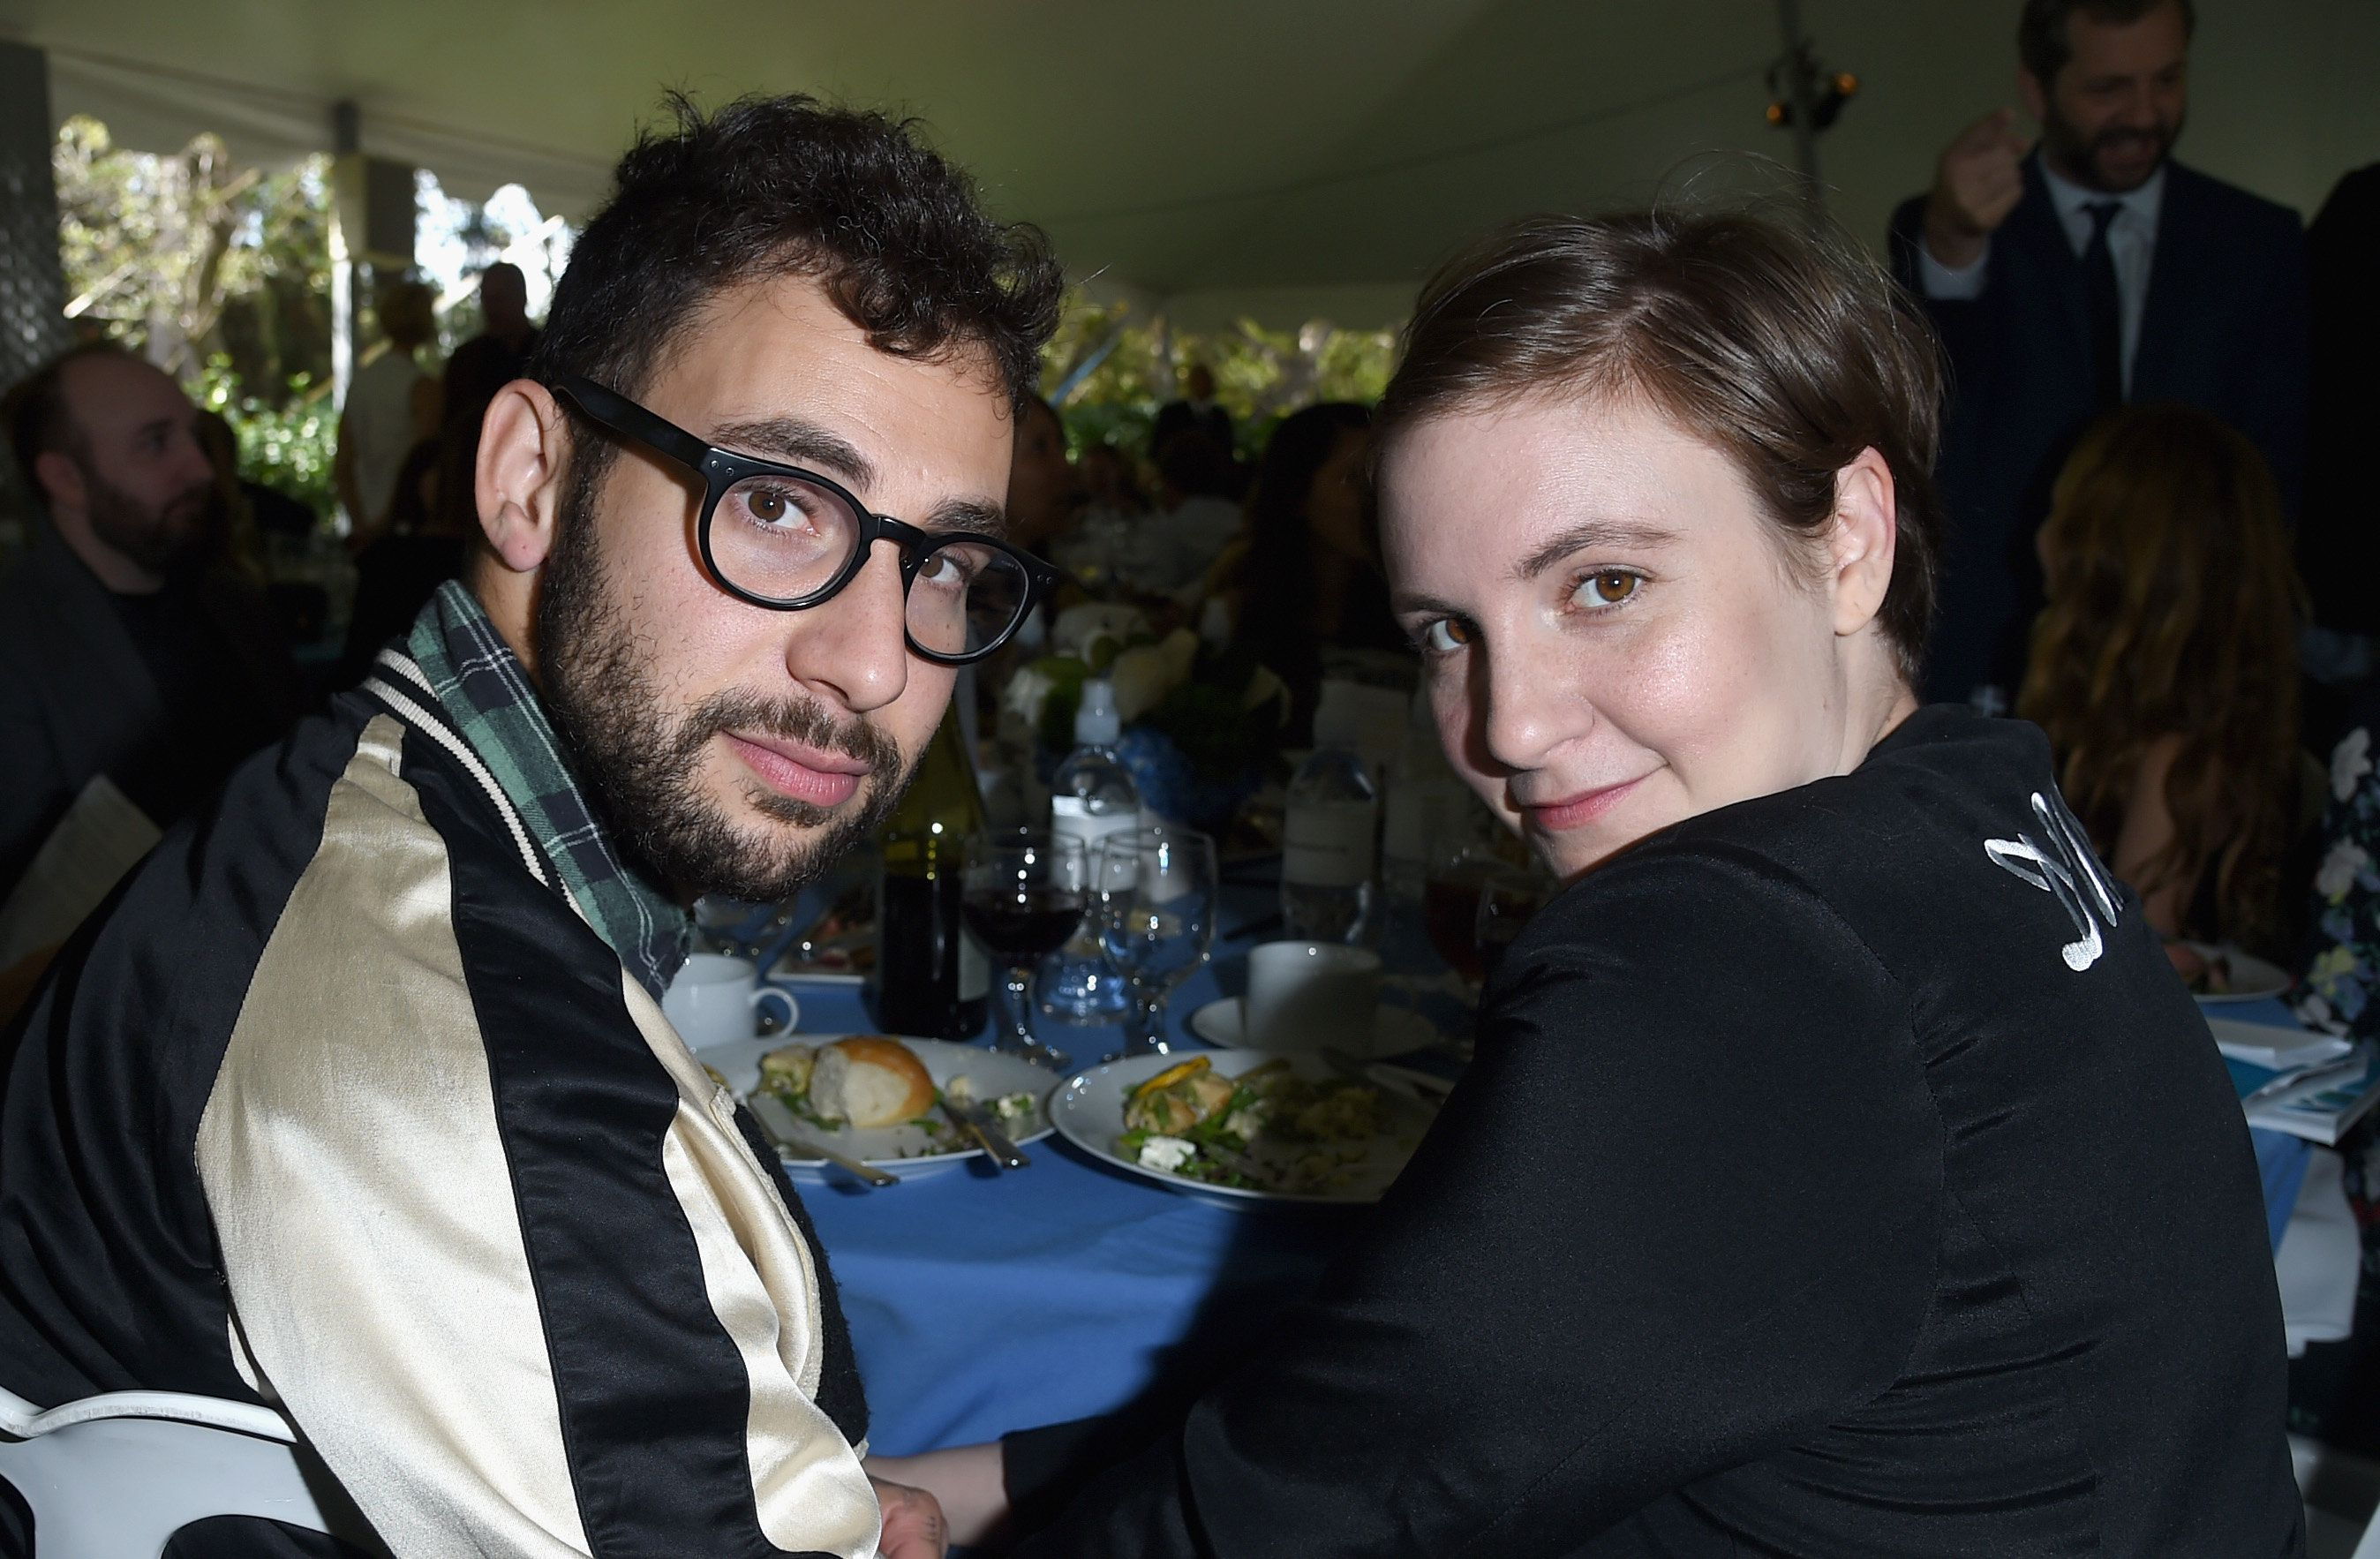 Lena Dunham and Jack Antonoff Have Reportedly Broken Up